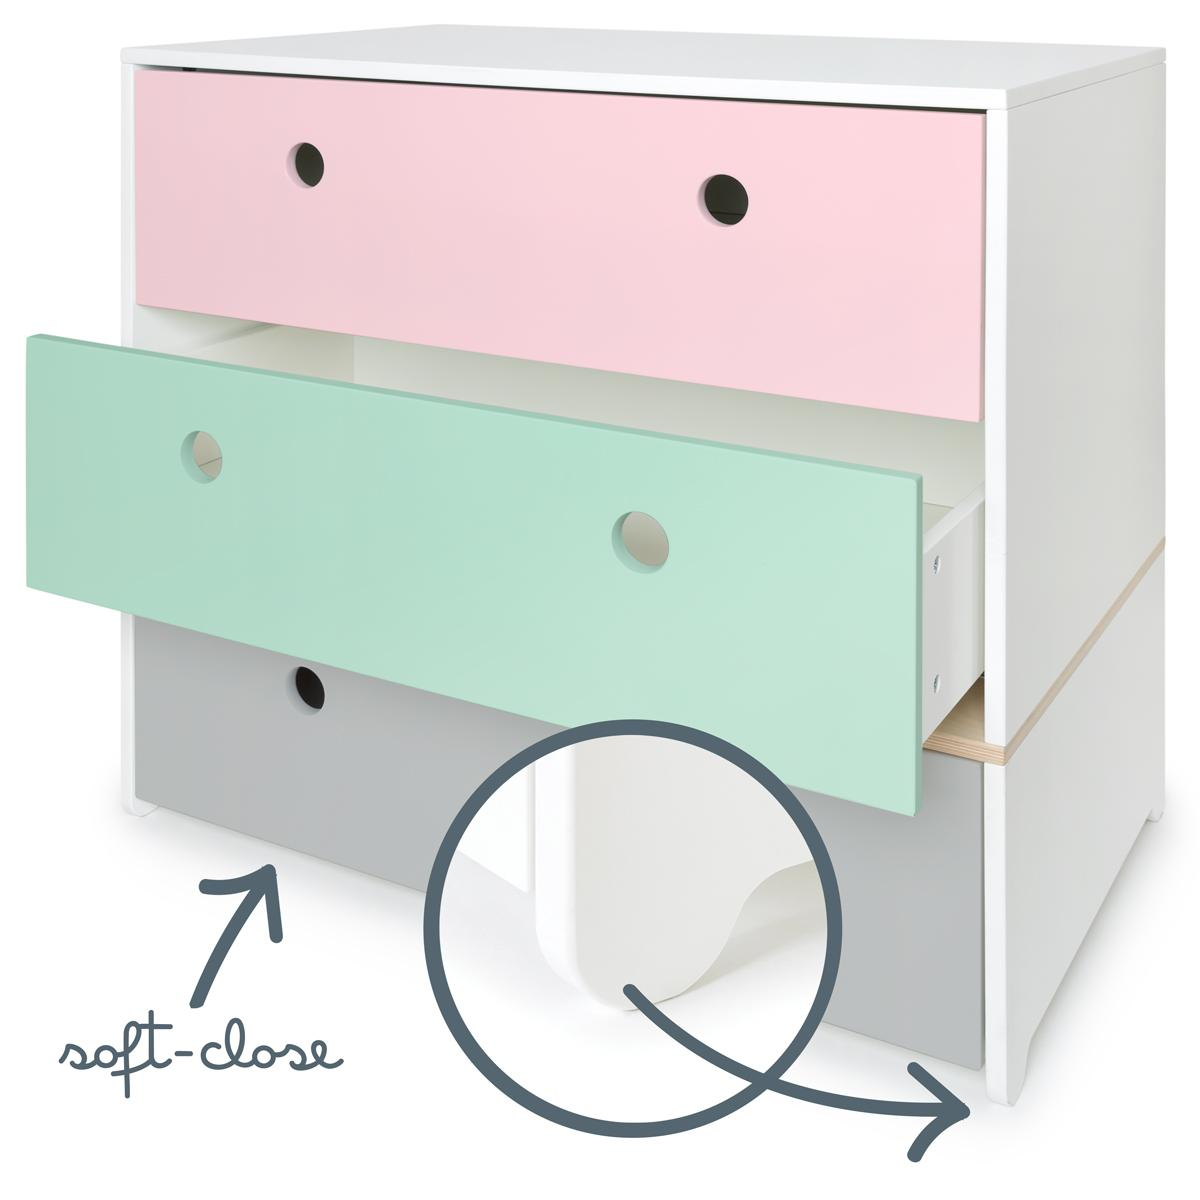 Commode COLORFLEX Abitare Kids façades tiroirs sweet pink-mint-pearl grey